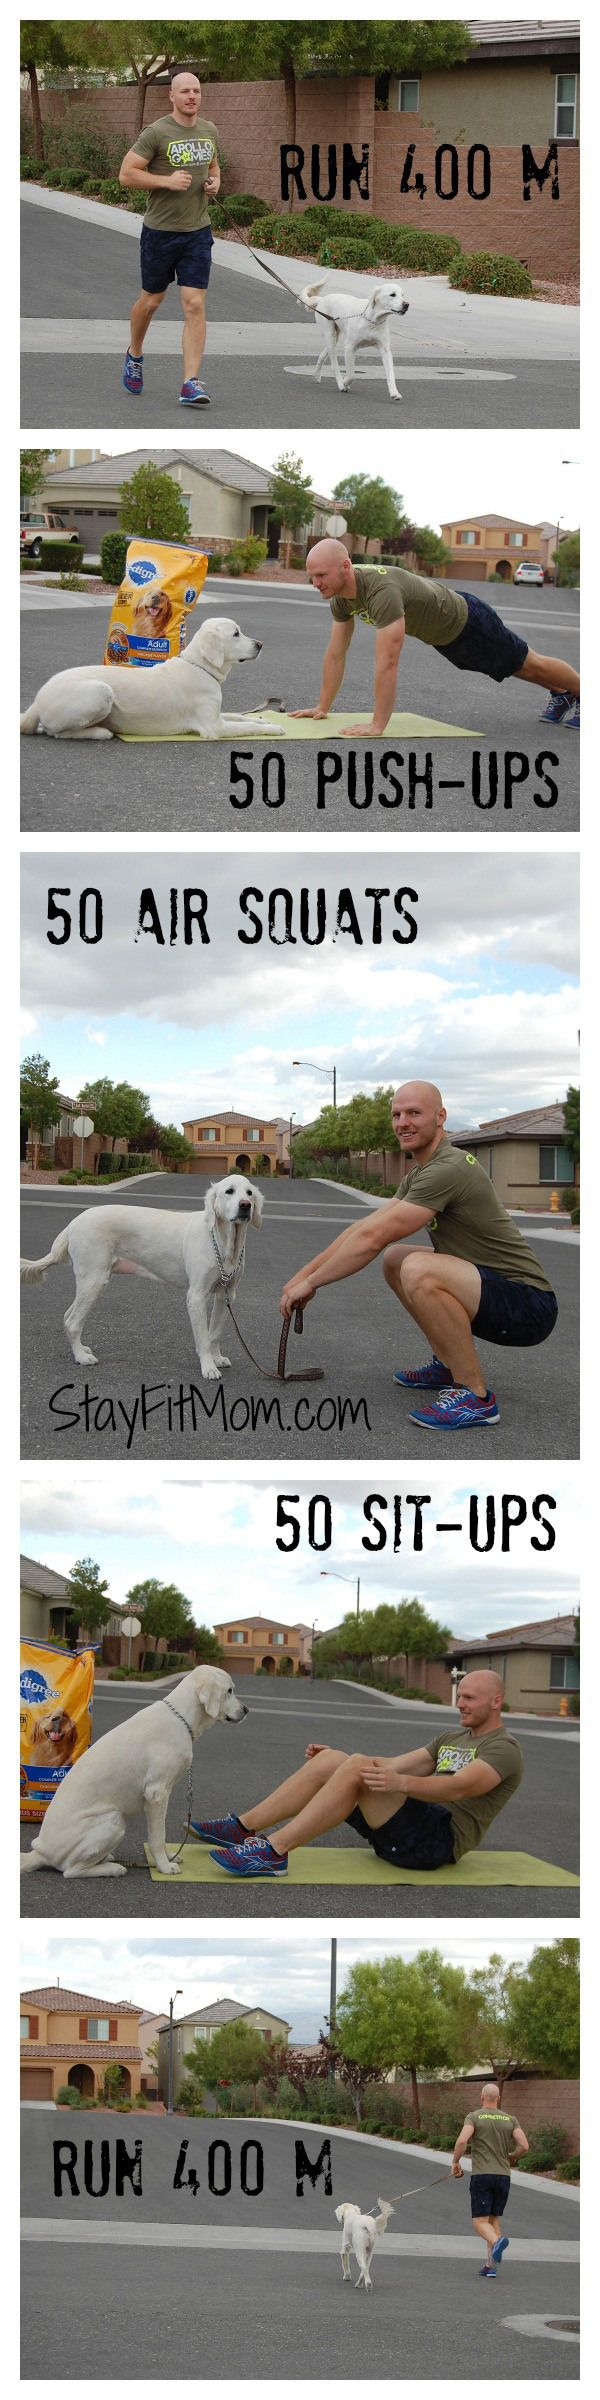 CrossFit workout with the family dog from StayFitMom.com! #PedigreeGives #ad